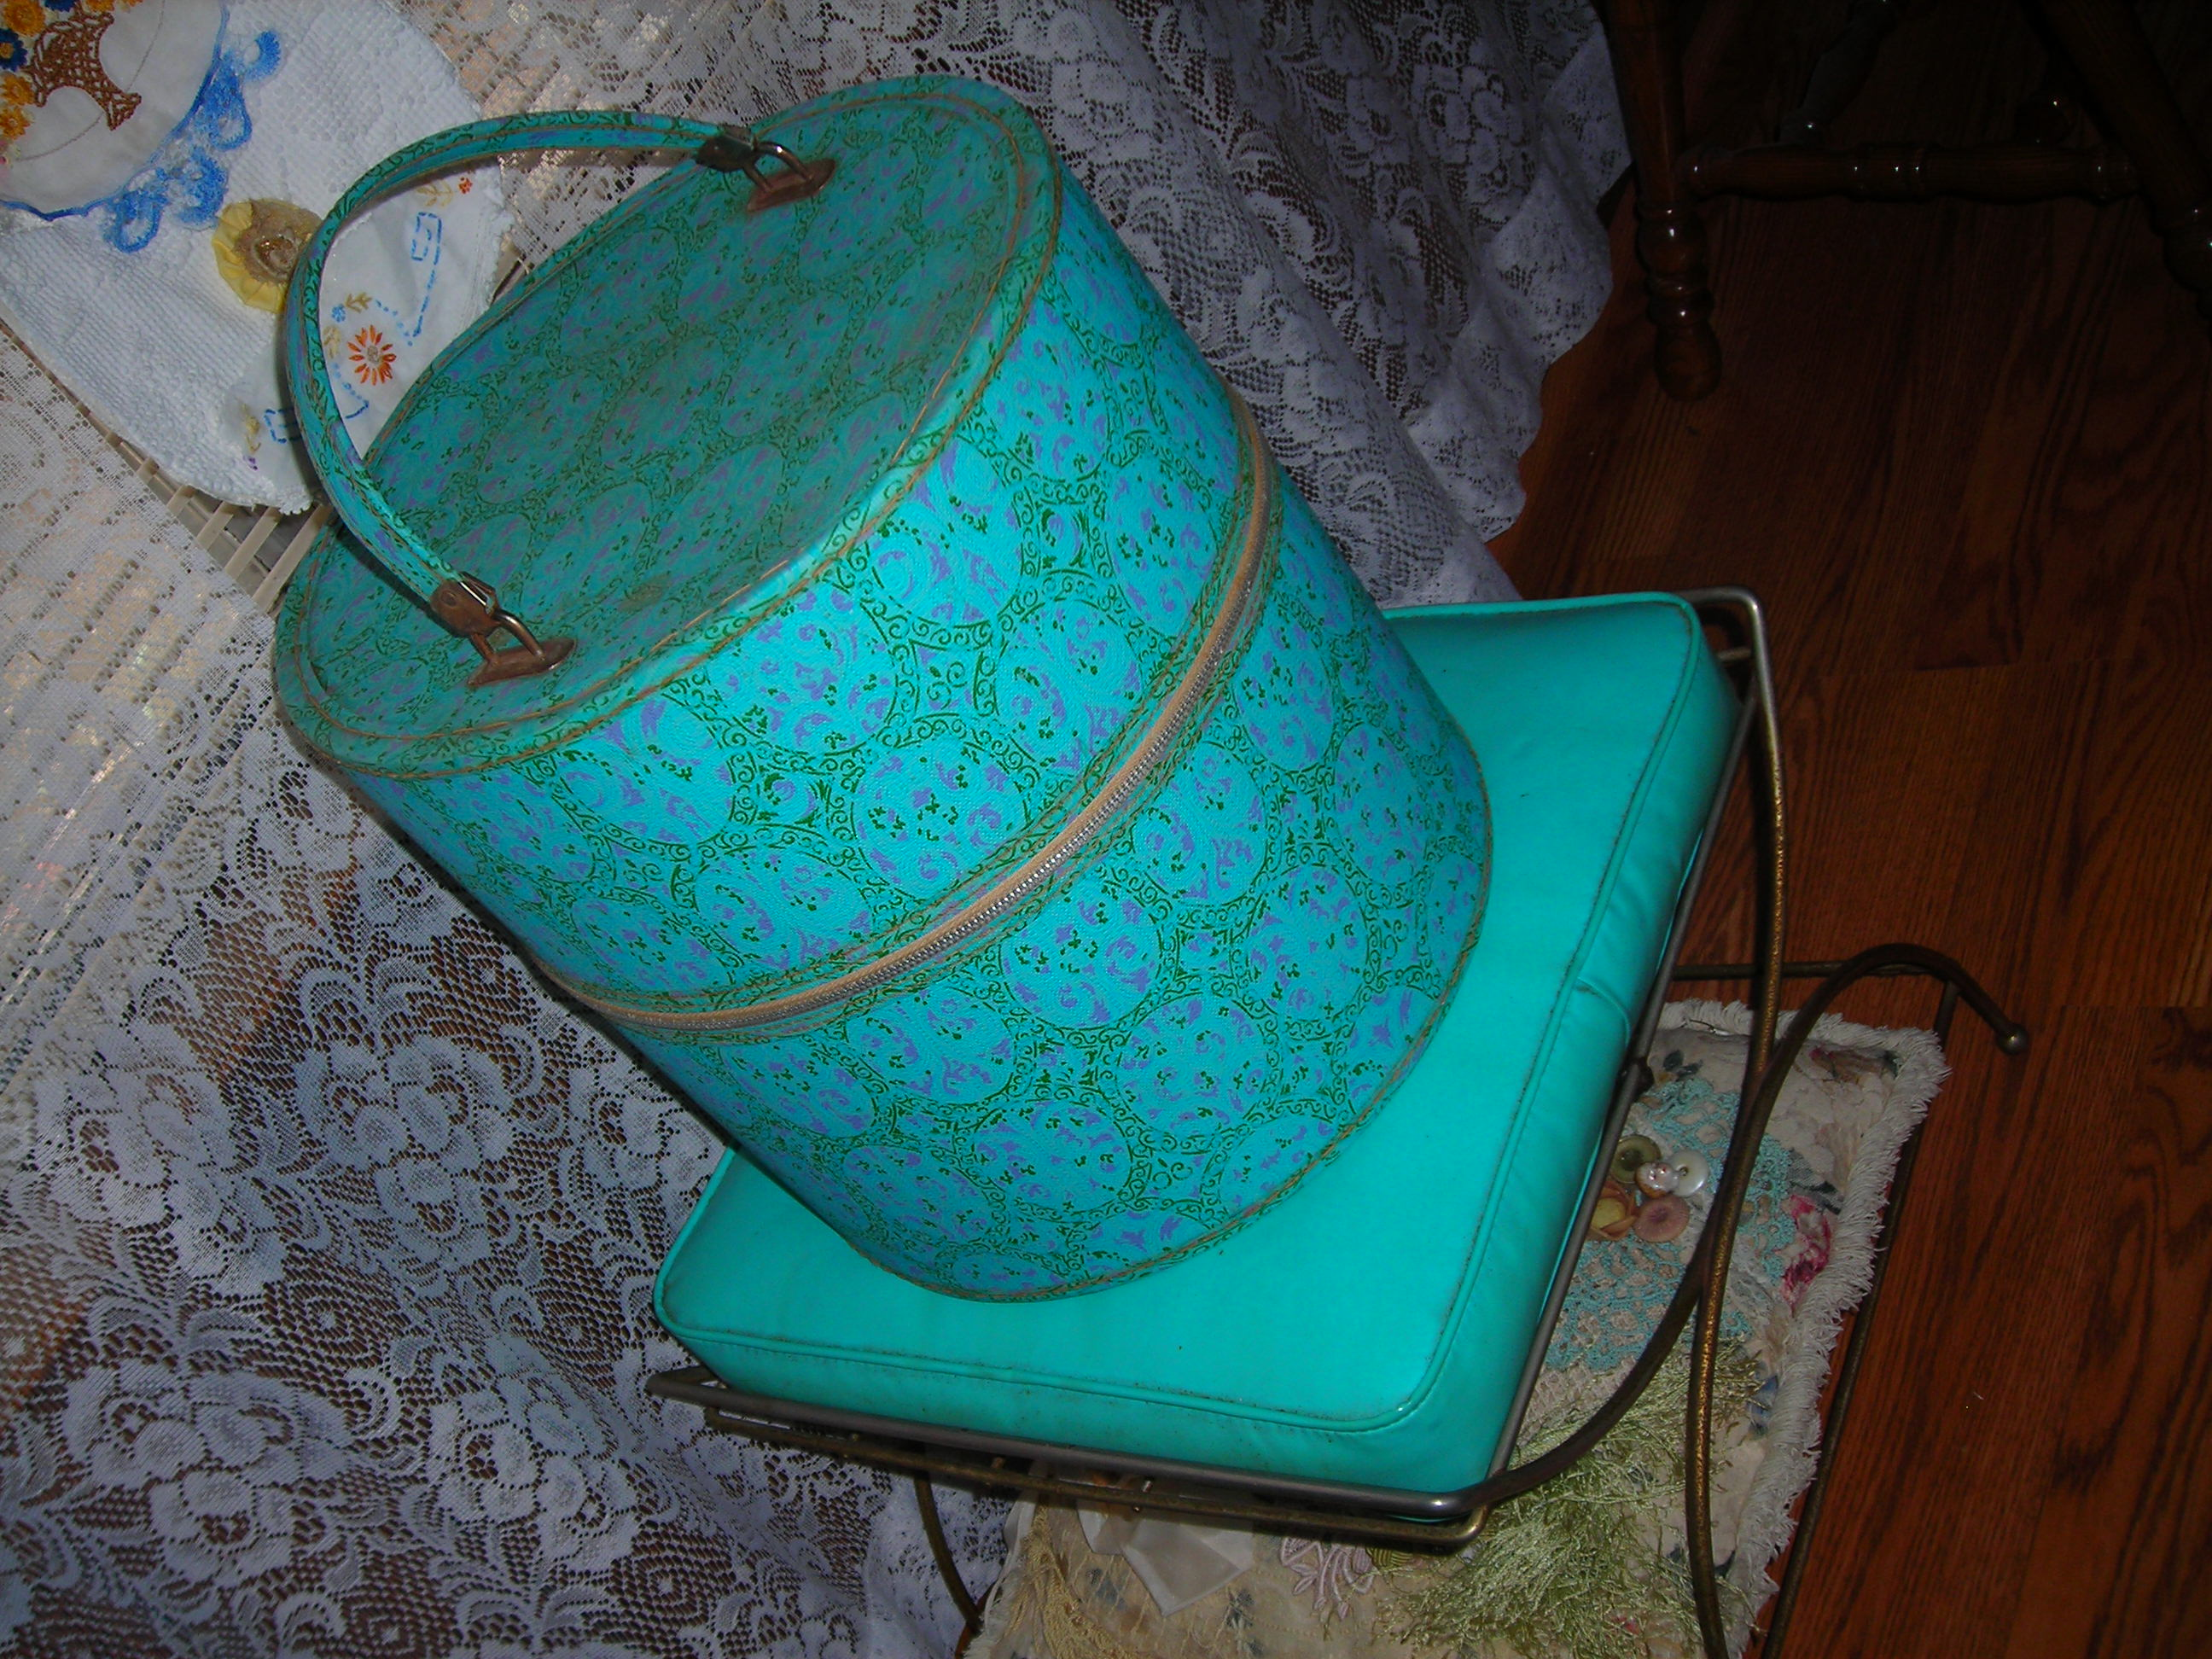 probably one of my fave pieces from the sales this weekend ... a turquoise wig box from the 1950s